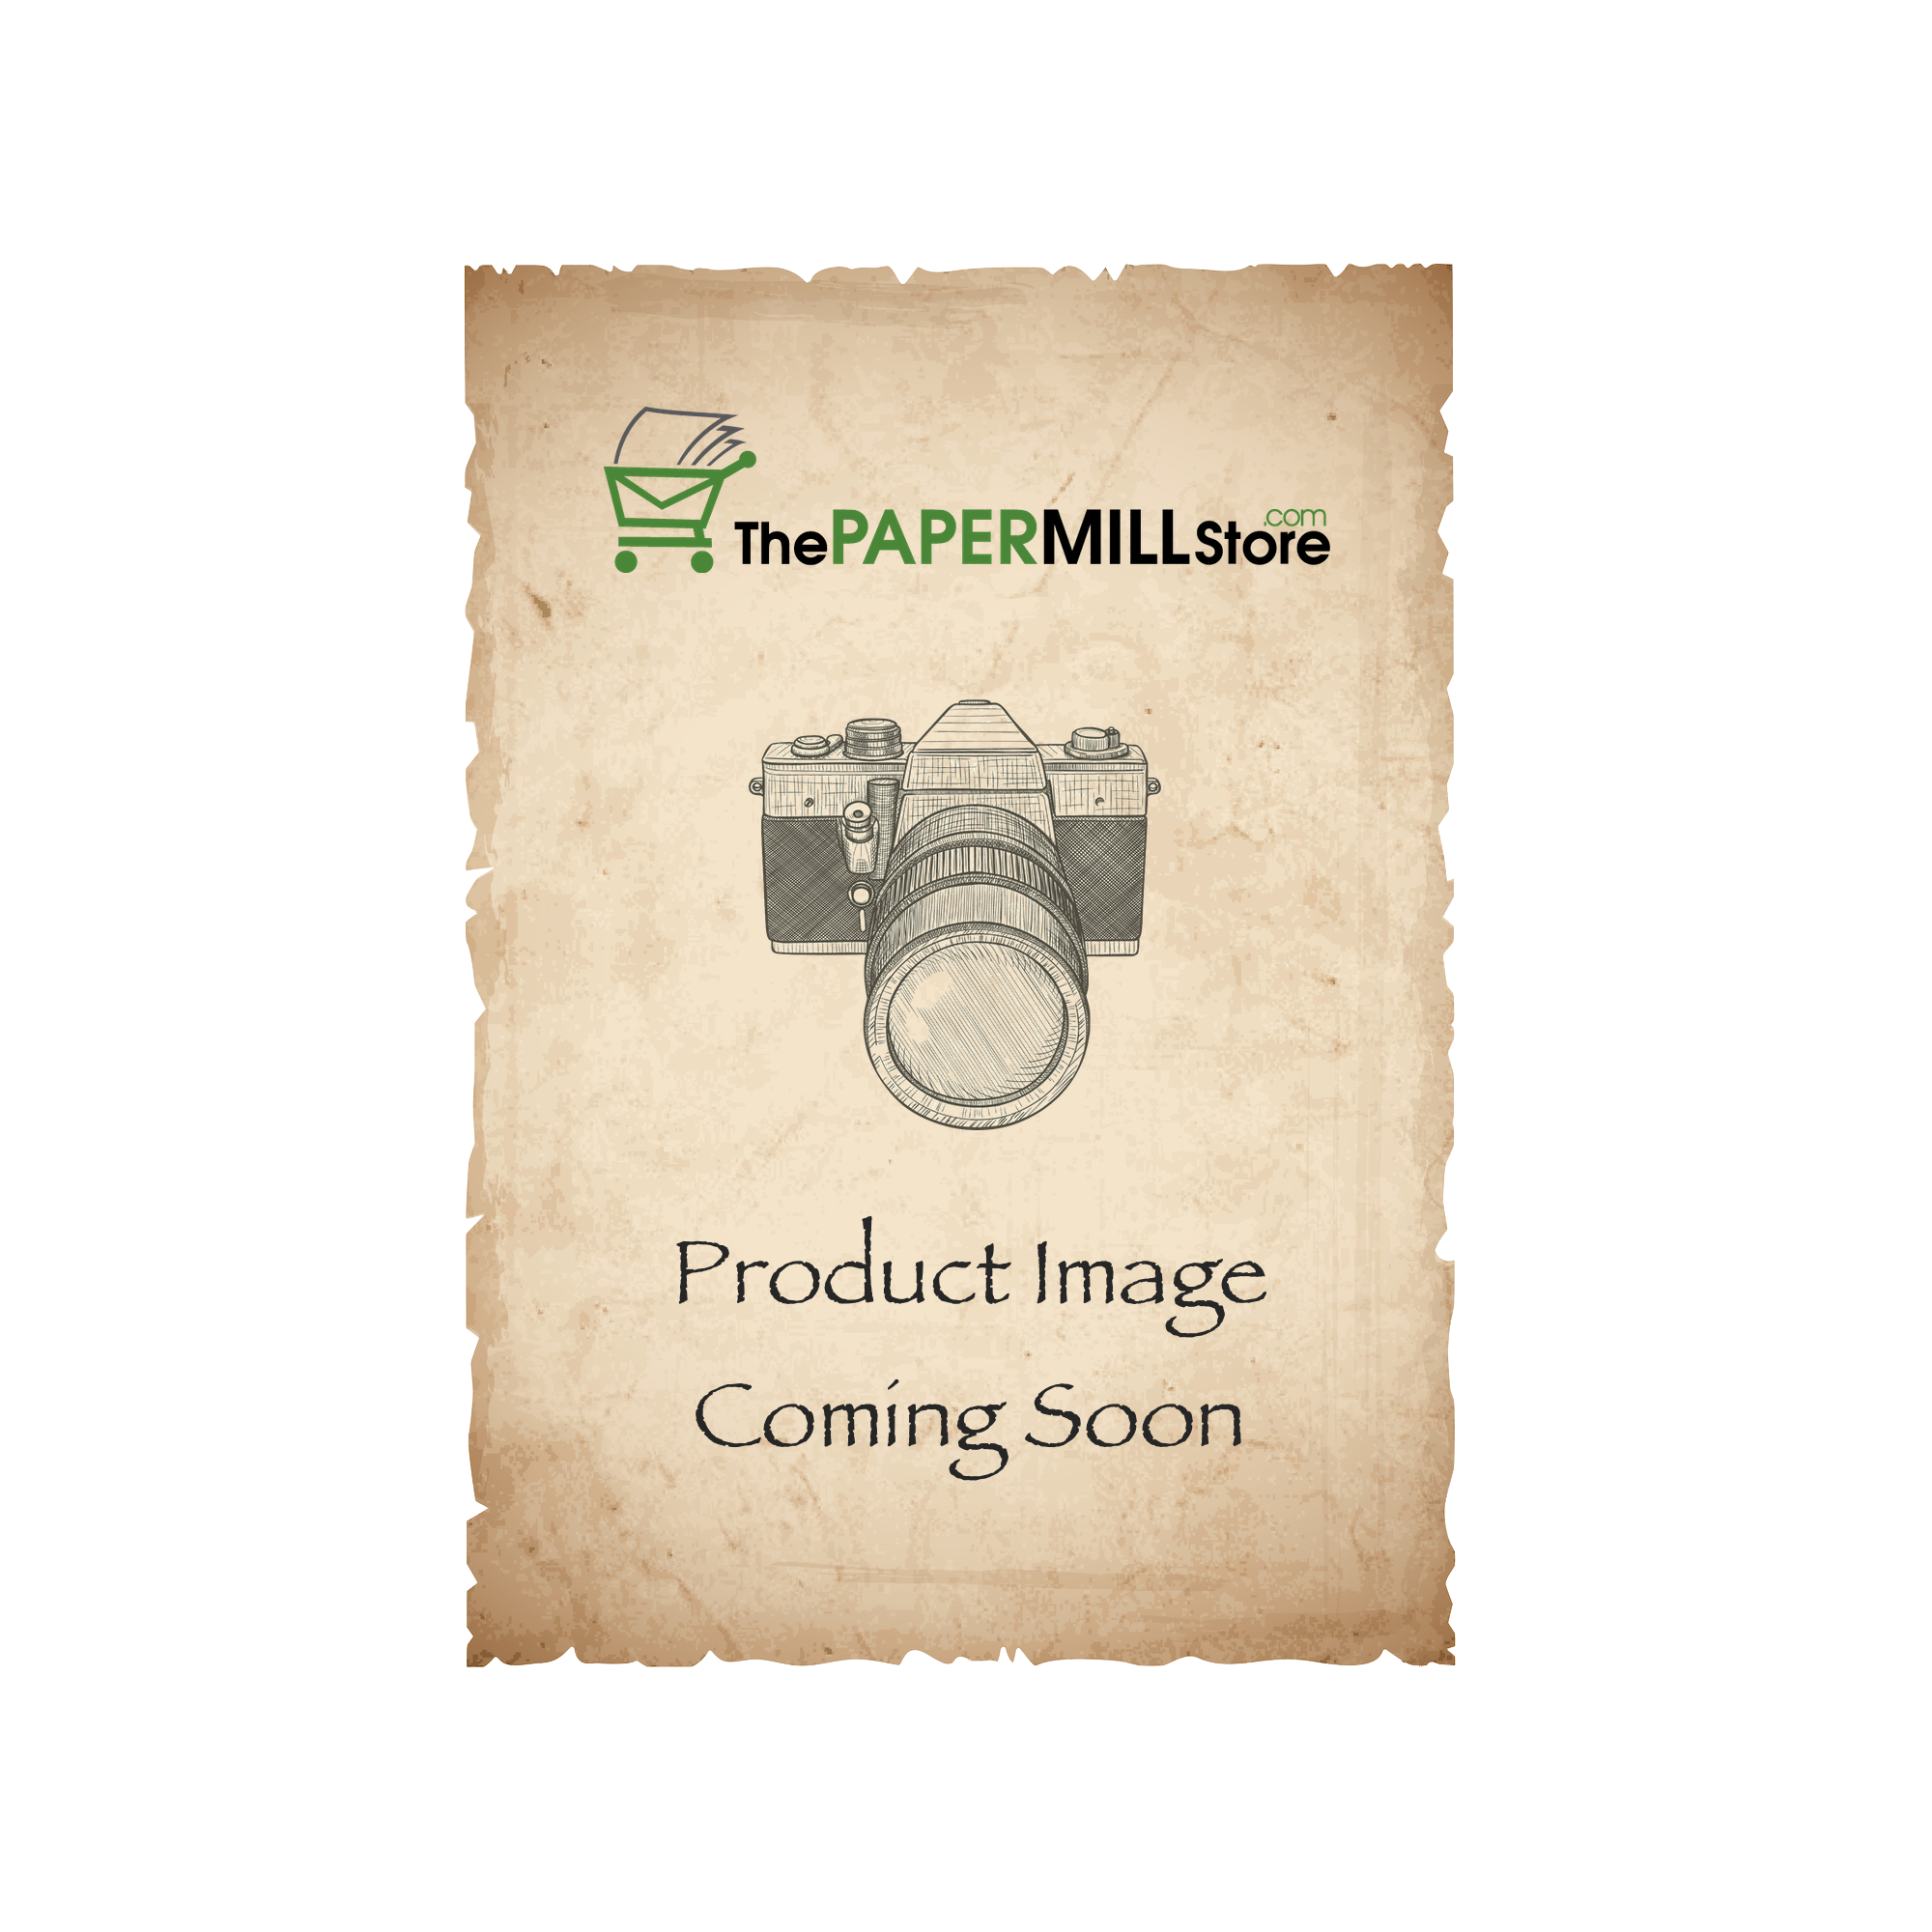 Loop Inxwell i-Tone Eco Cream Card Stock - 19 x 13 in 80 lb Cover Vellum  100% Recycled 500 per Carton